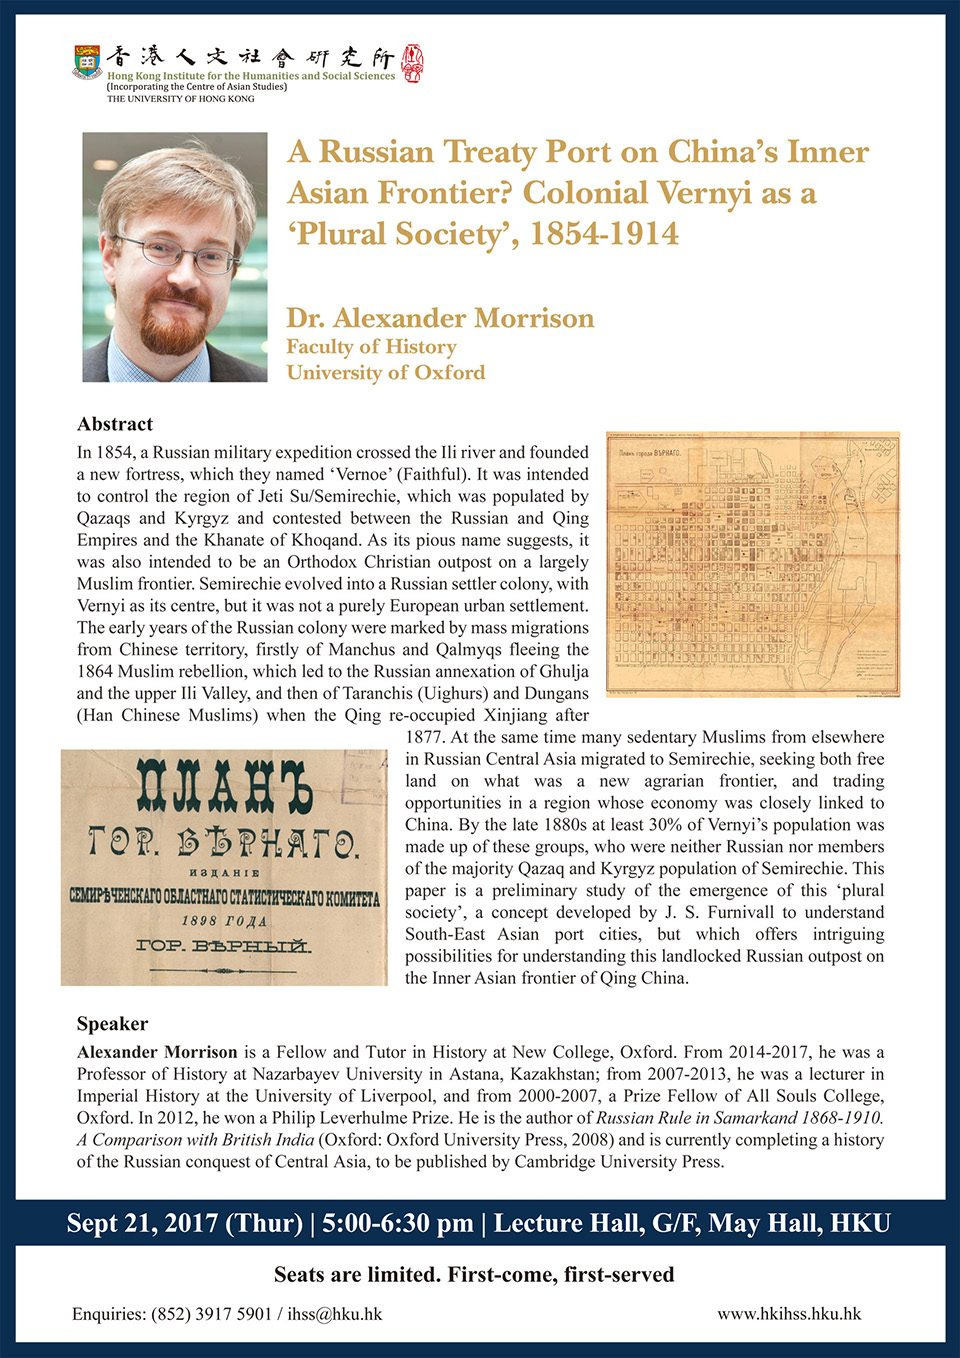 "Public Lecture on ""A Russian Treaty Port on China's Inner Asian Frontier? Colonial Vernyi as a 'Plural Society', 1854-1914"" by Dr. Alexander Morrison (September 21, 2017)"